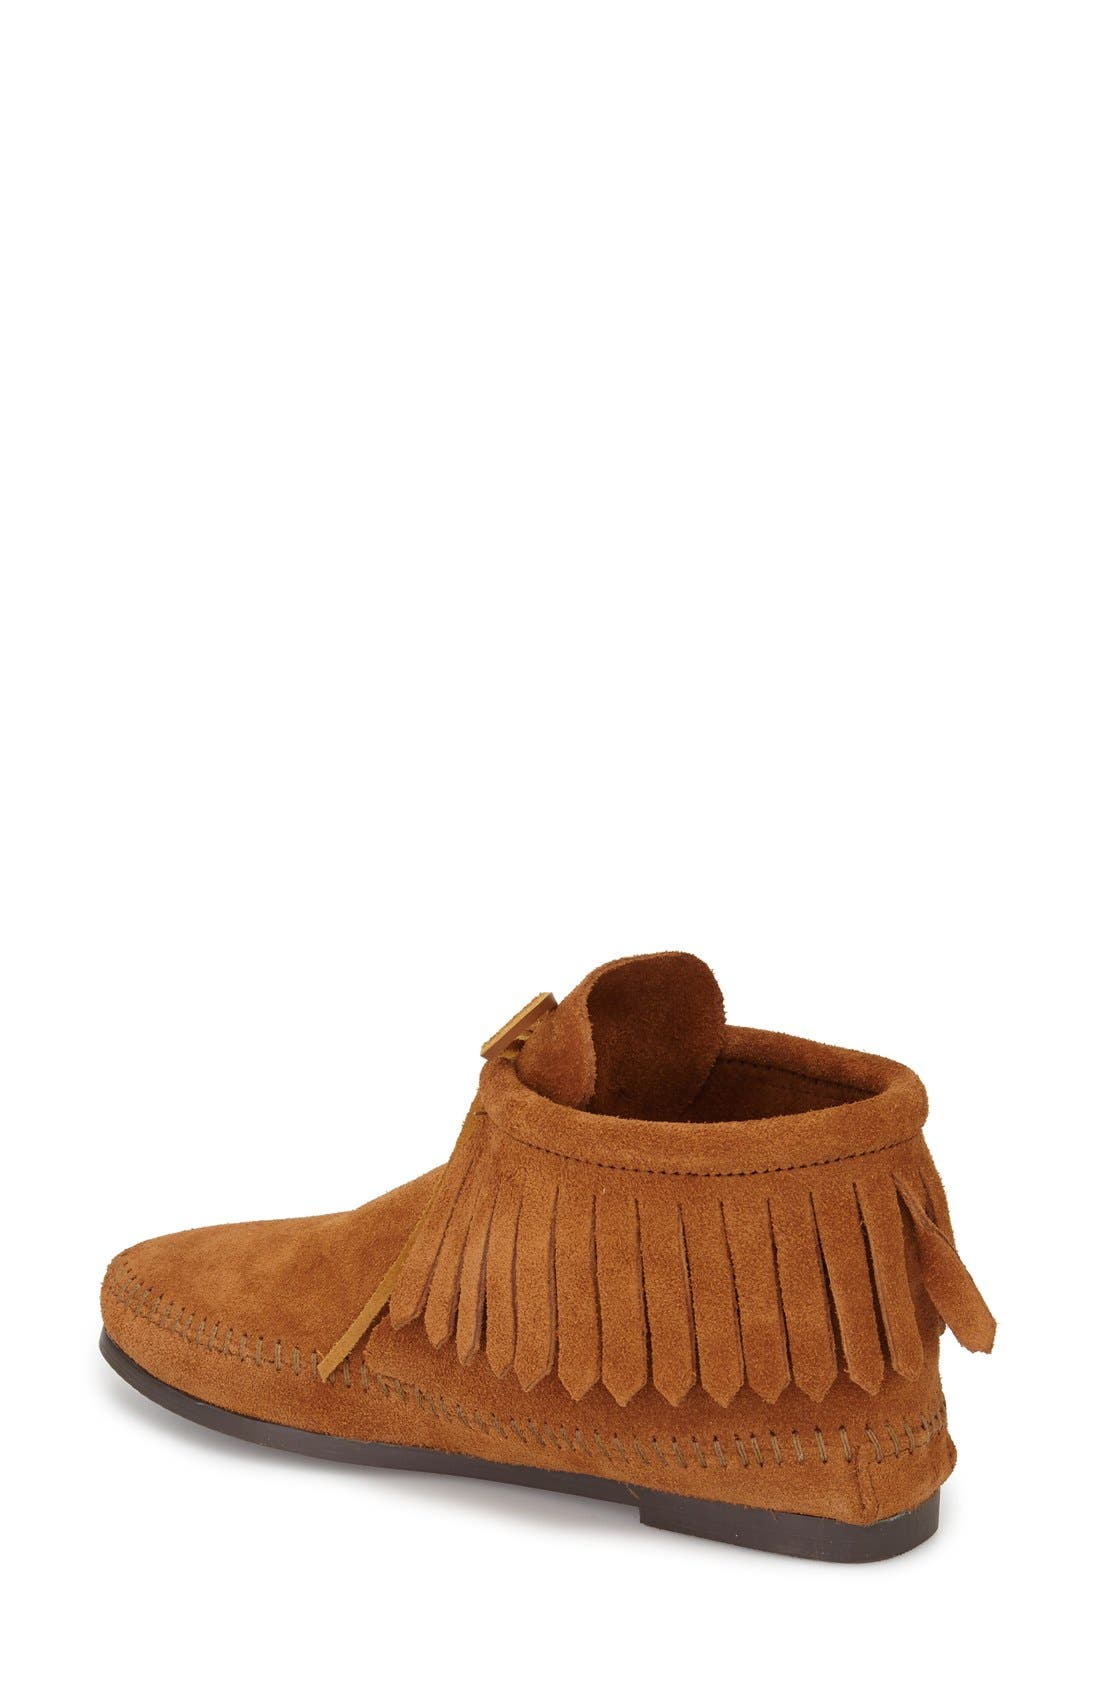 Classic Fringed Chukka Style Boot,                             Alternate thumbnail 2, color,                             Brown